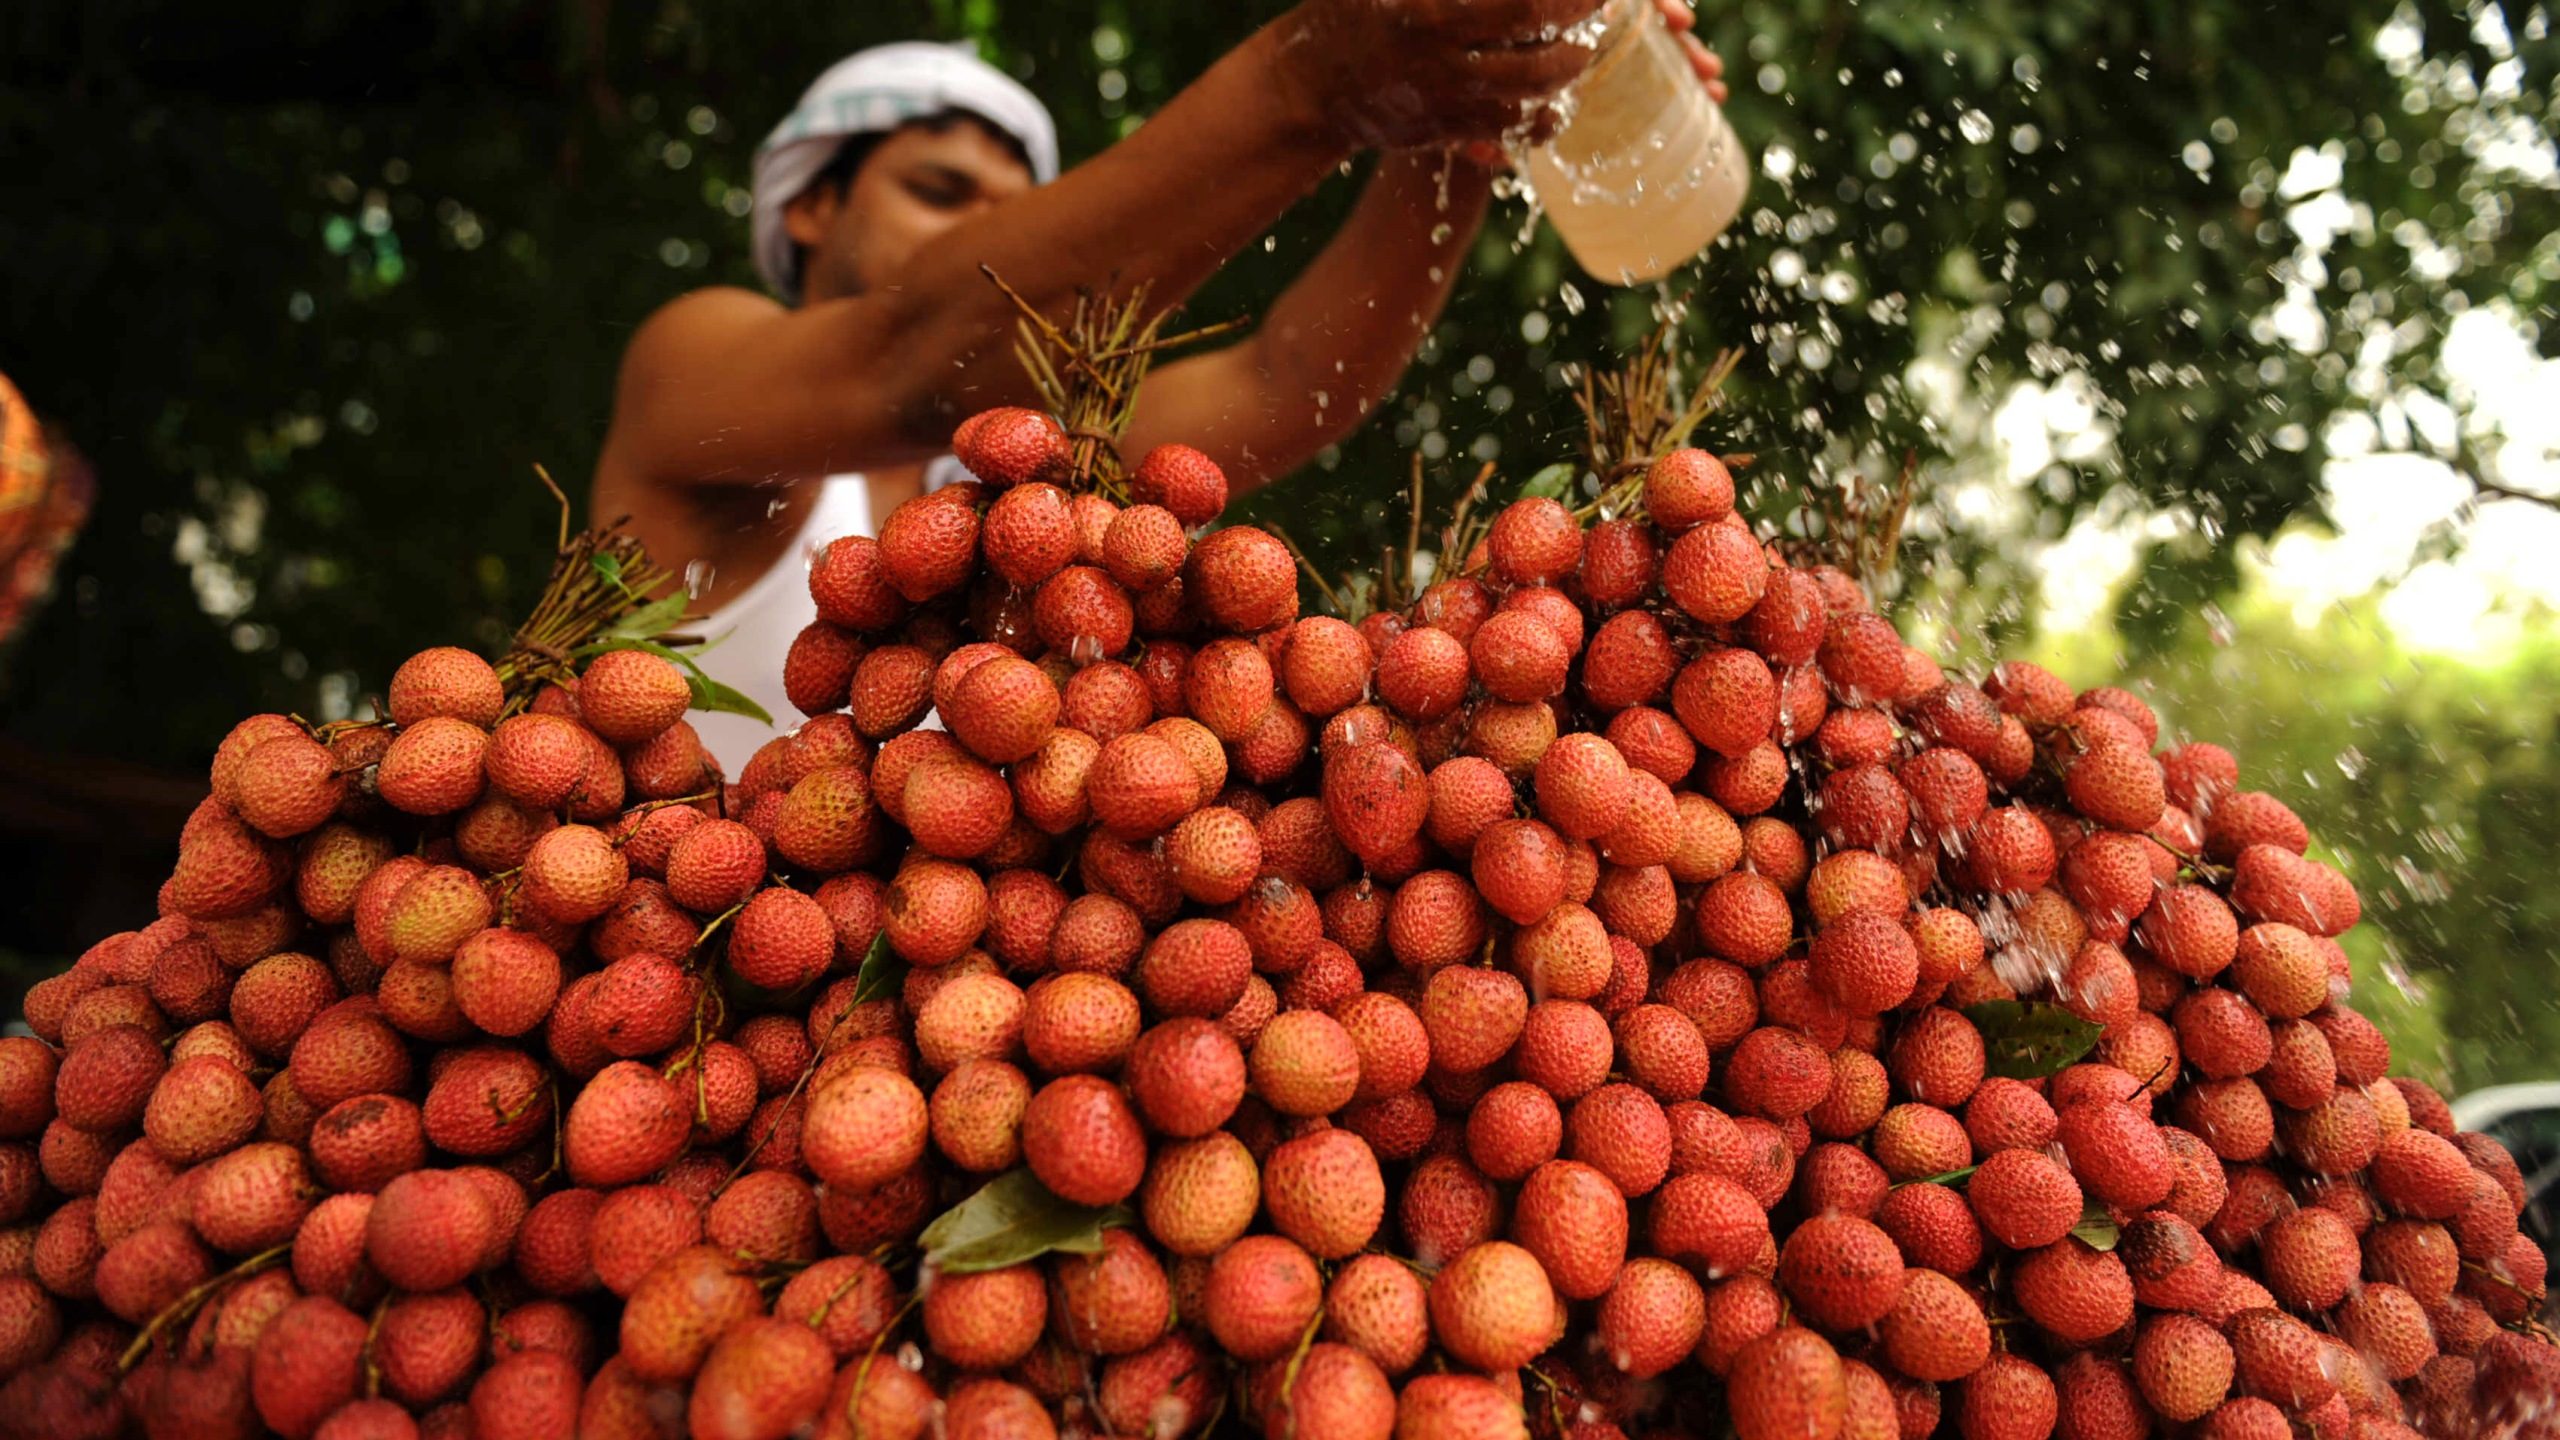 A fruit vendor pours water over lychees at a roadside cart in Allahabad, India, on May 29, 2010. (Credit: DIPTENDU DUTTA/AFP/Getty Images)